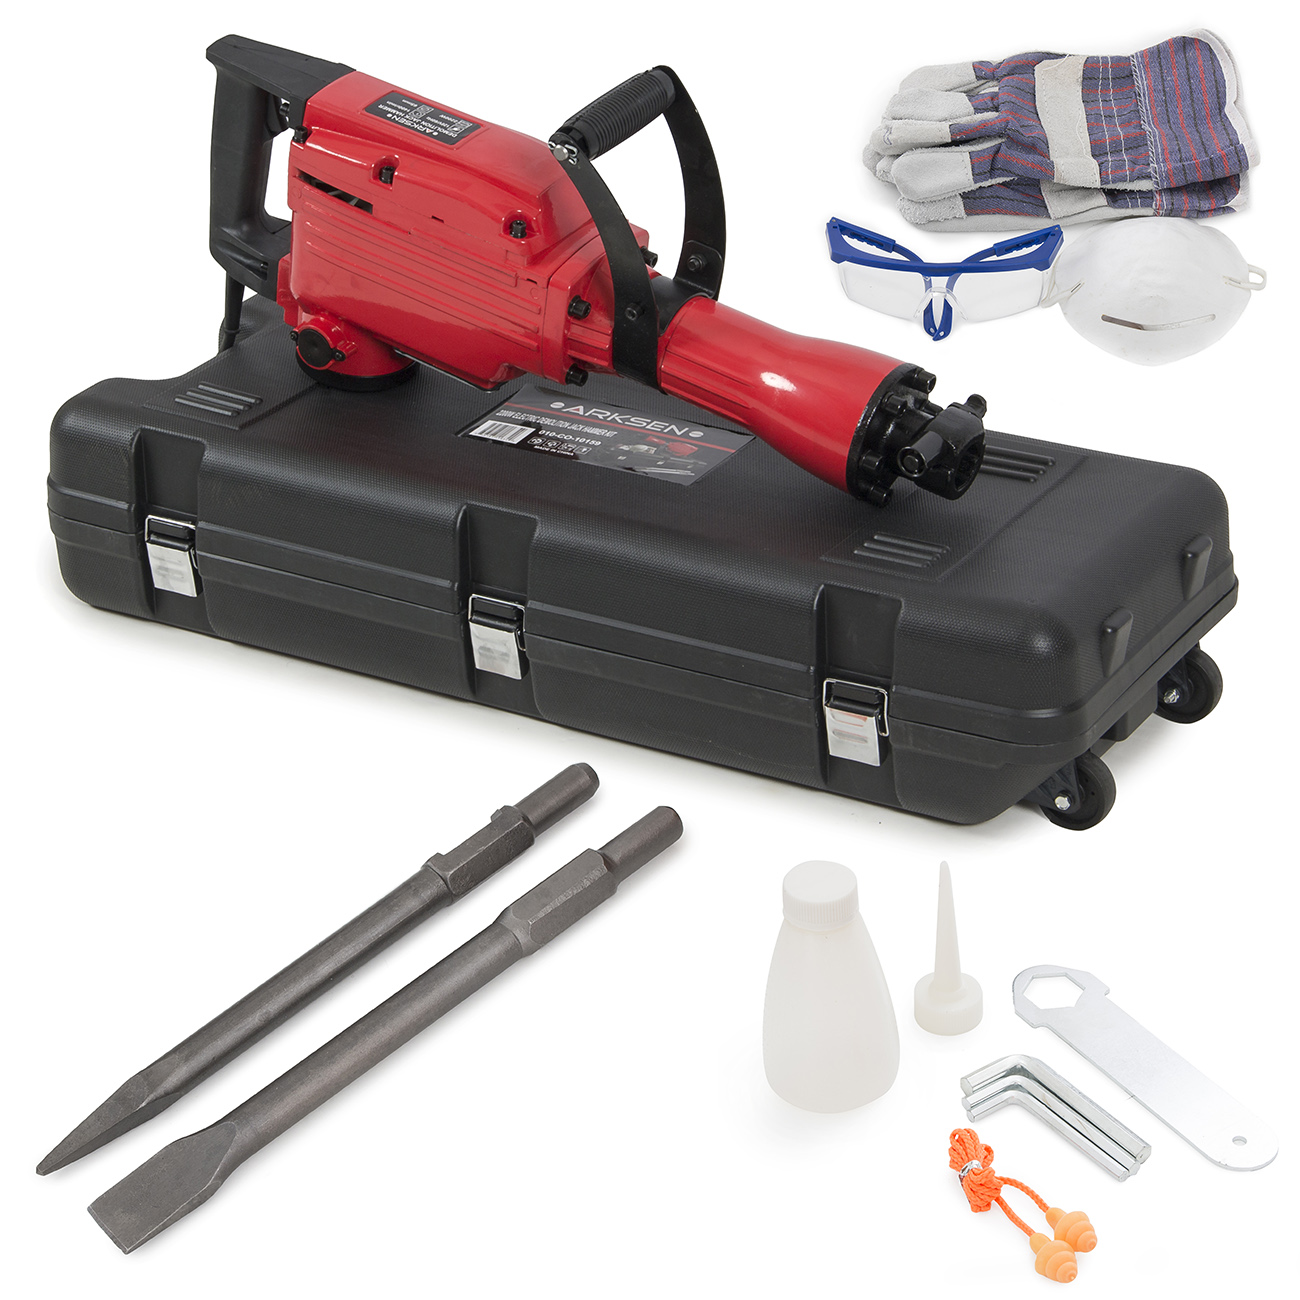 Arksen 2200W Electric Demolition Jack Hammer Concrete Breaker Punch & Chisel Bits with Case Kit